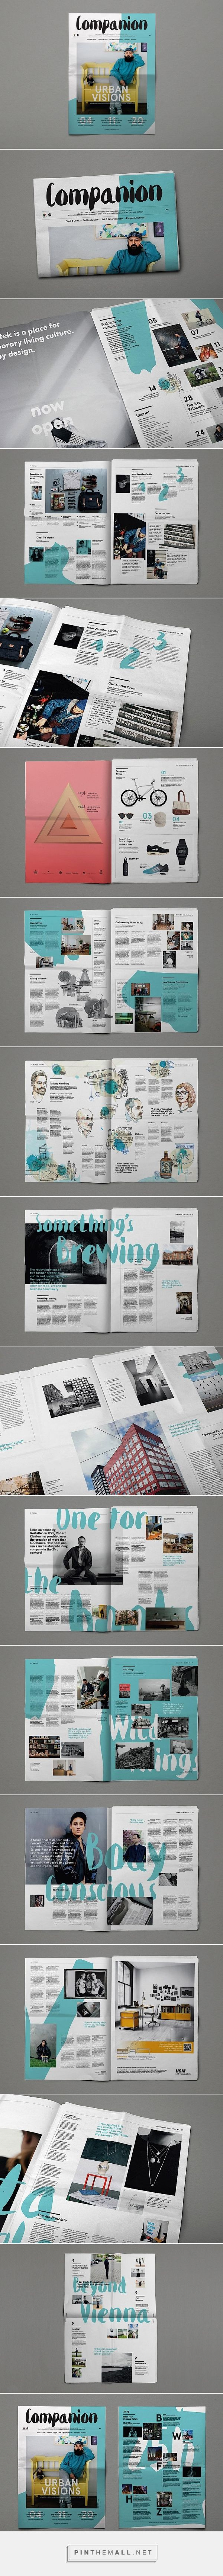 Editorial Design Inspiration: Companion Magazine | Abduzeedo Design Inspiration